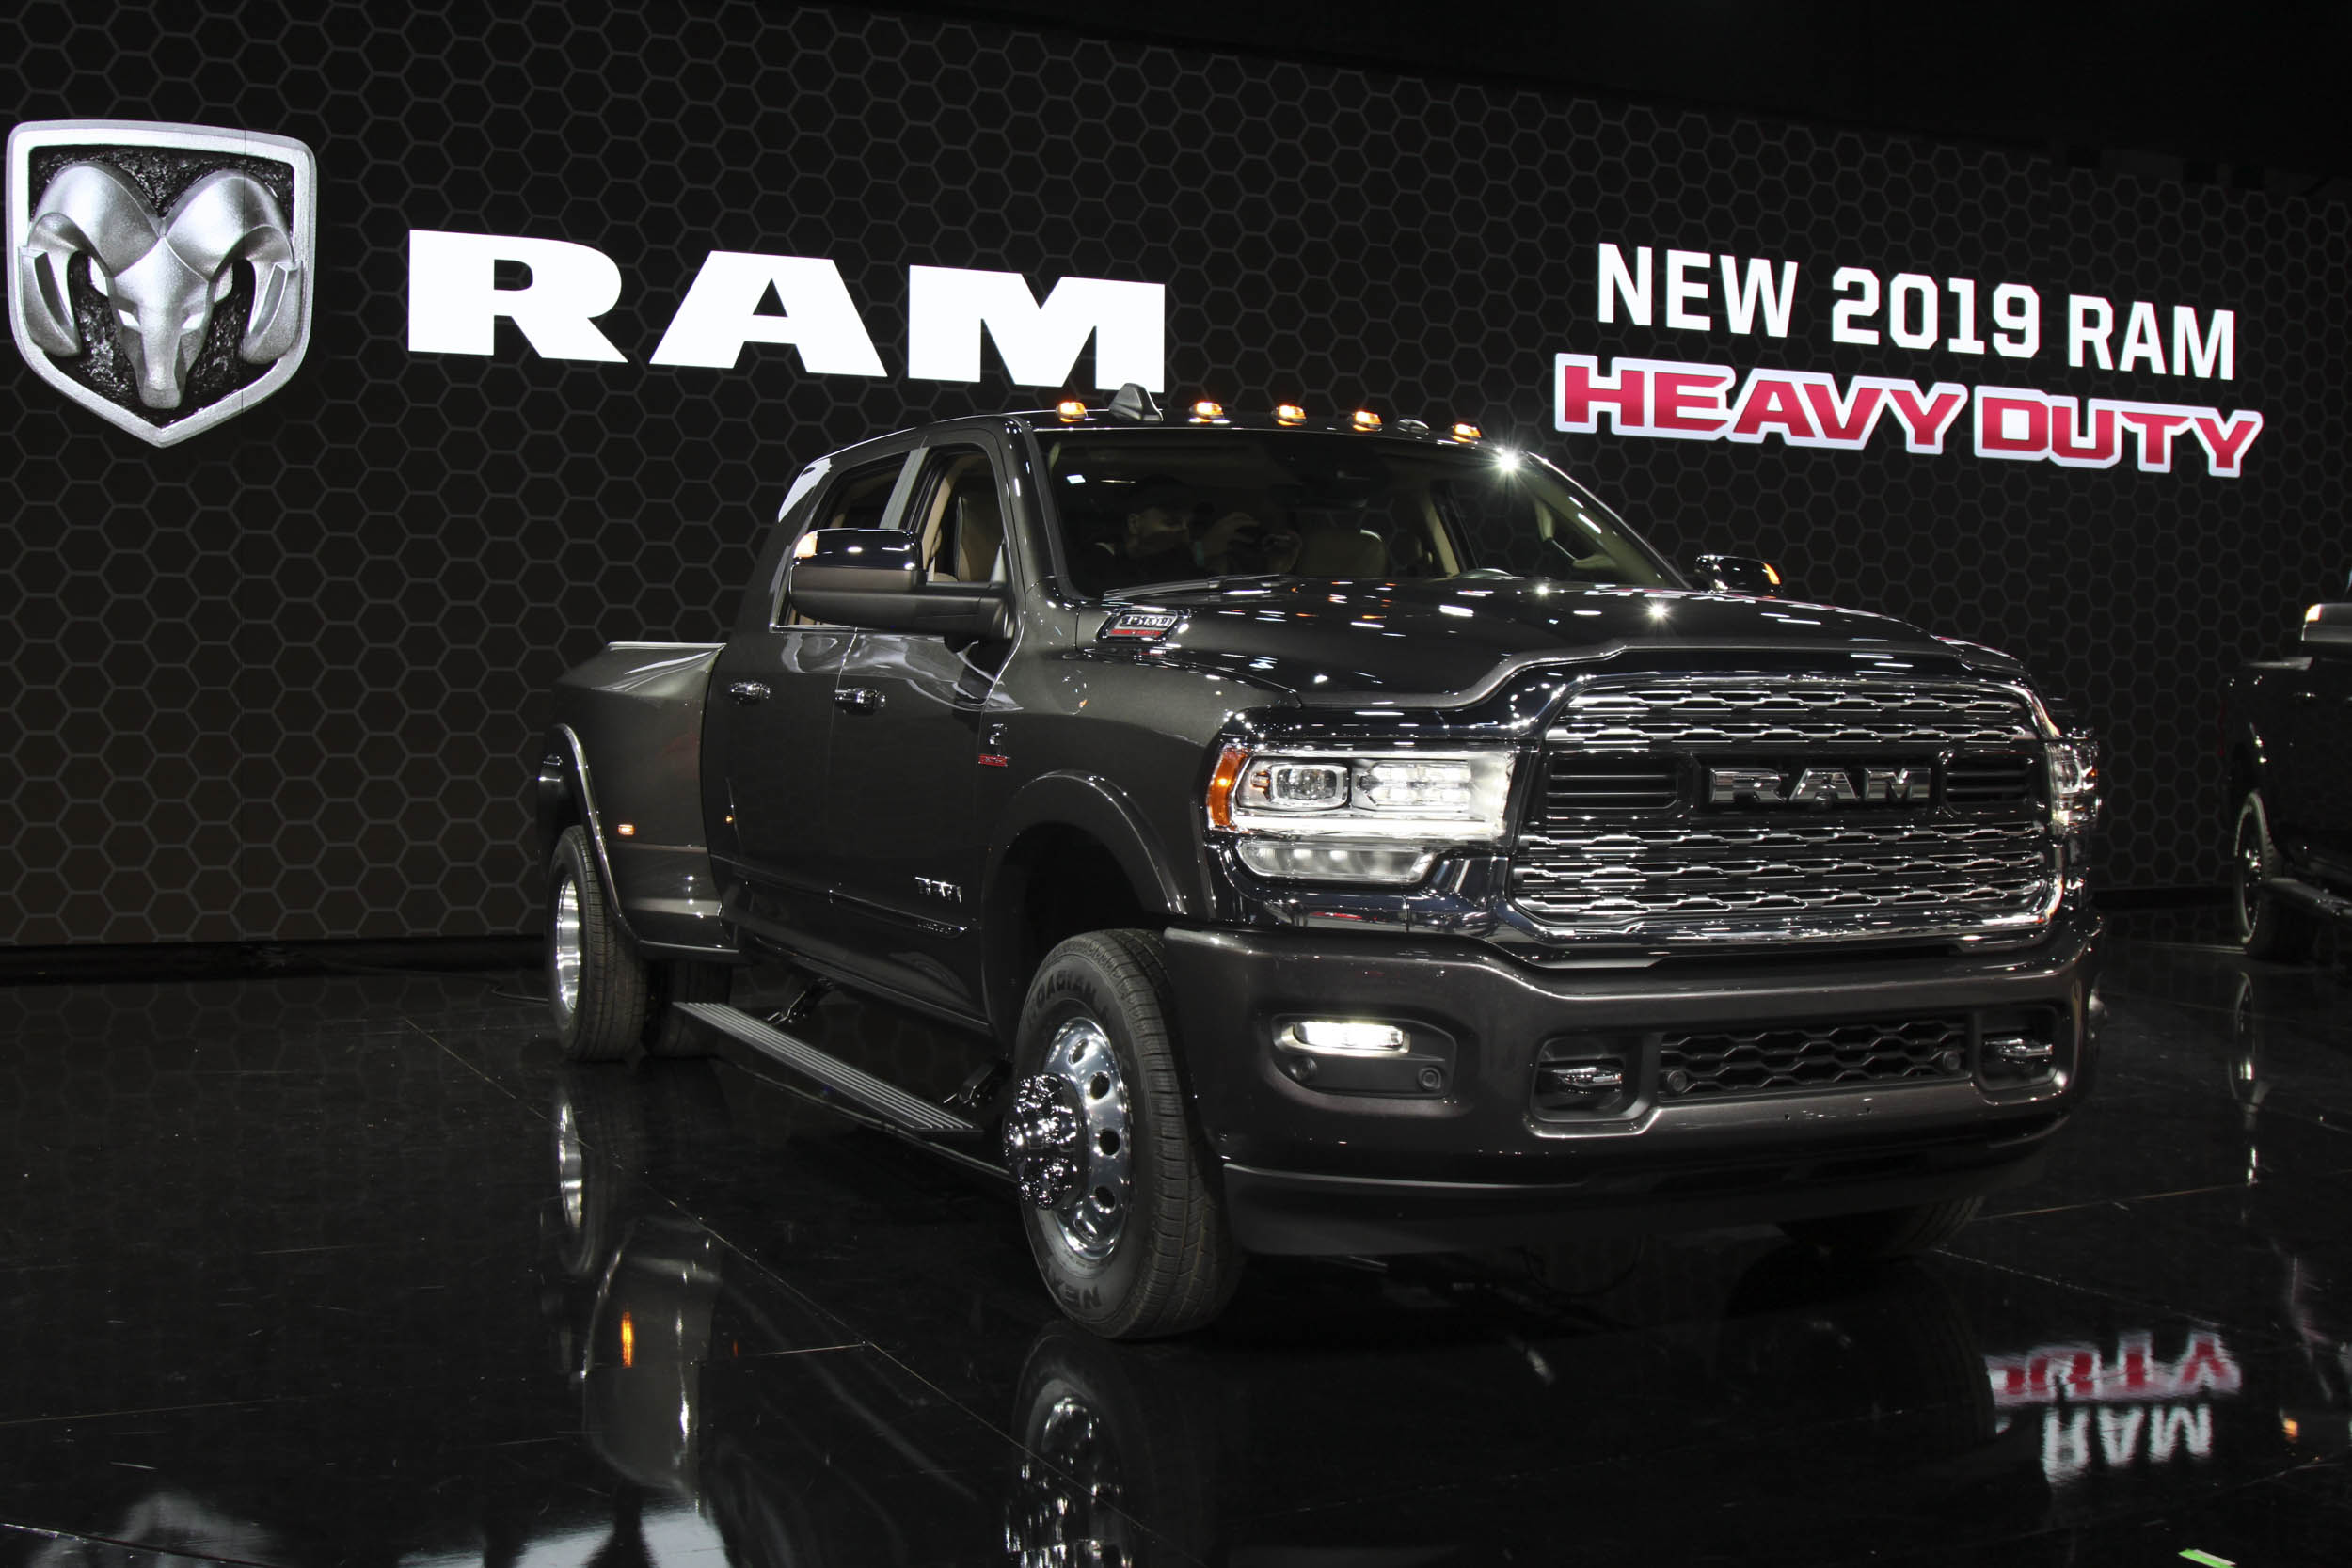 The new Ram trucks: 1000 lb-ft of torque and other feats of HD dominance thumbnail